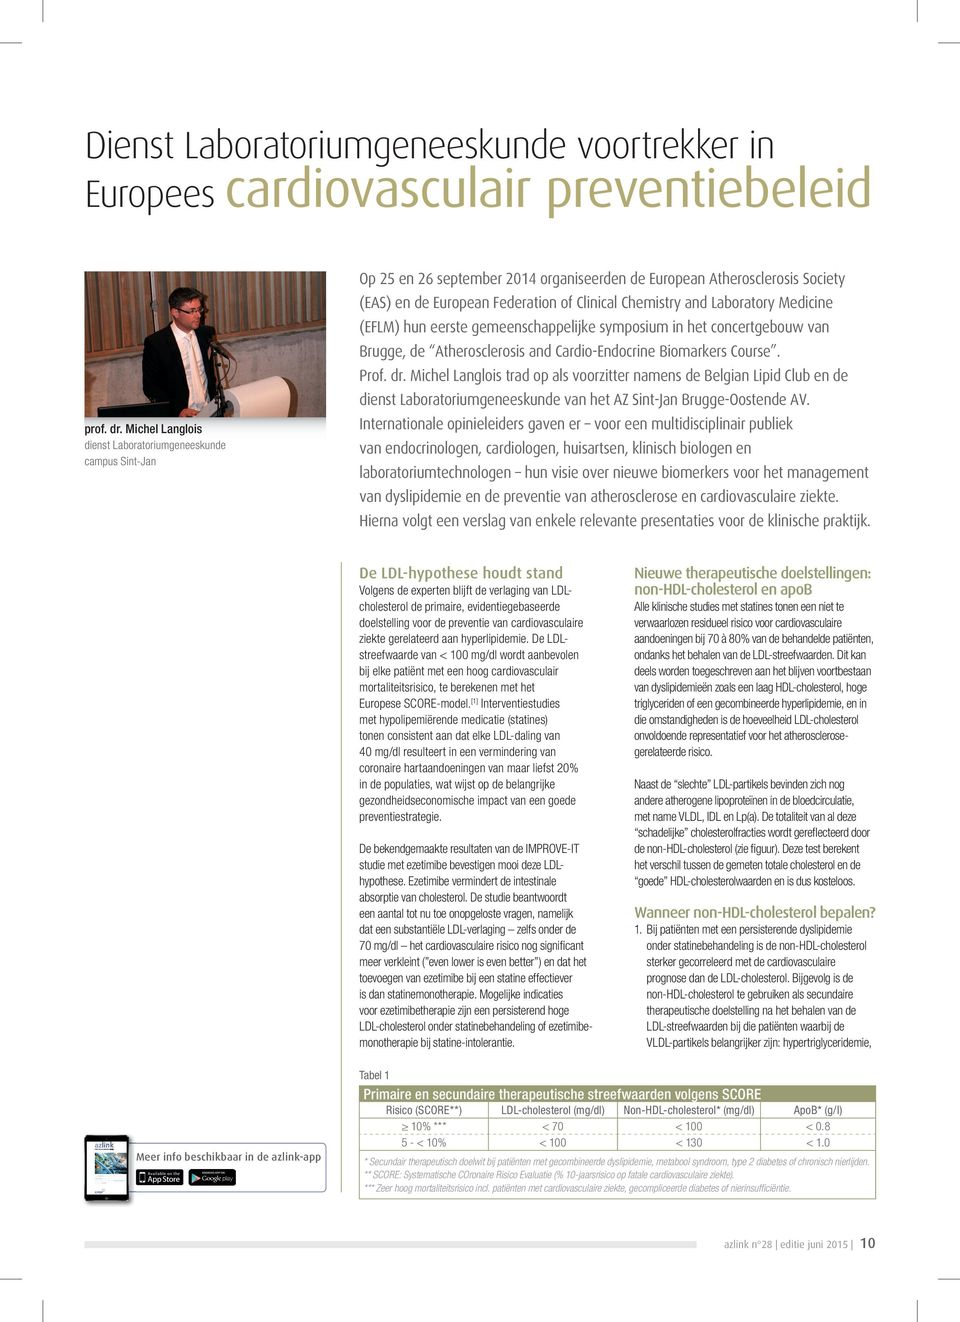 Michel Langlois dienst Laboratoriumgeneeskunde campus Sint-Jan Op 25 en 26 september 2014 organiseerden de European Atherosclerosis Society (EAS) en de European Federation of Clinical Chemistry and